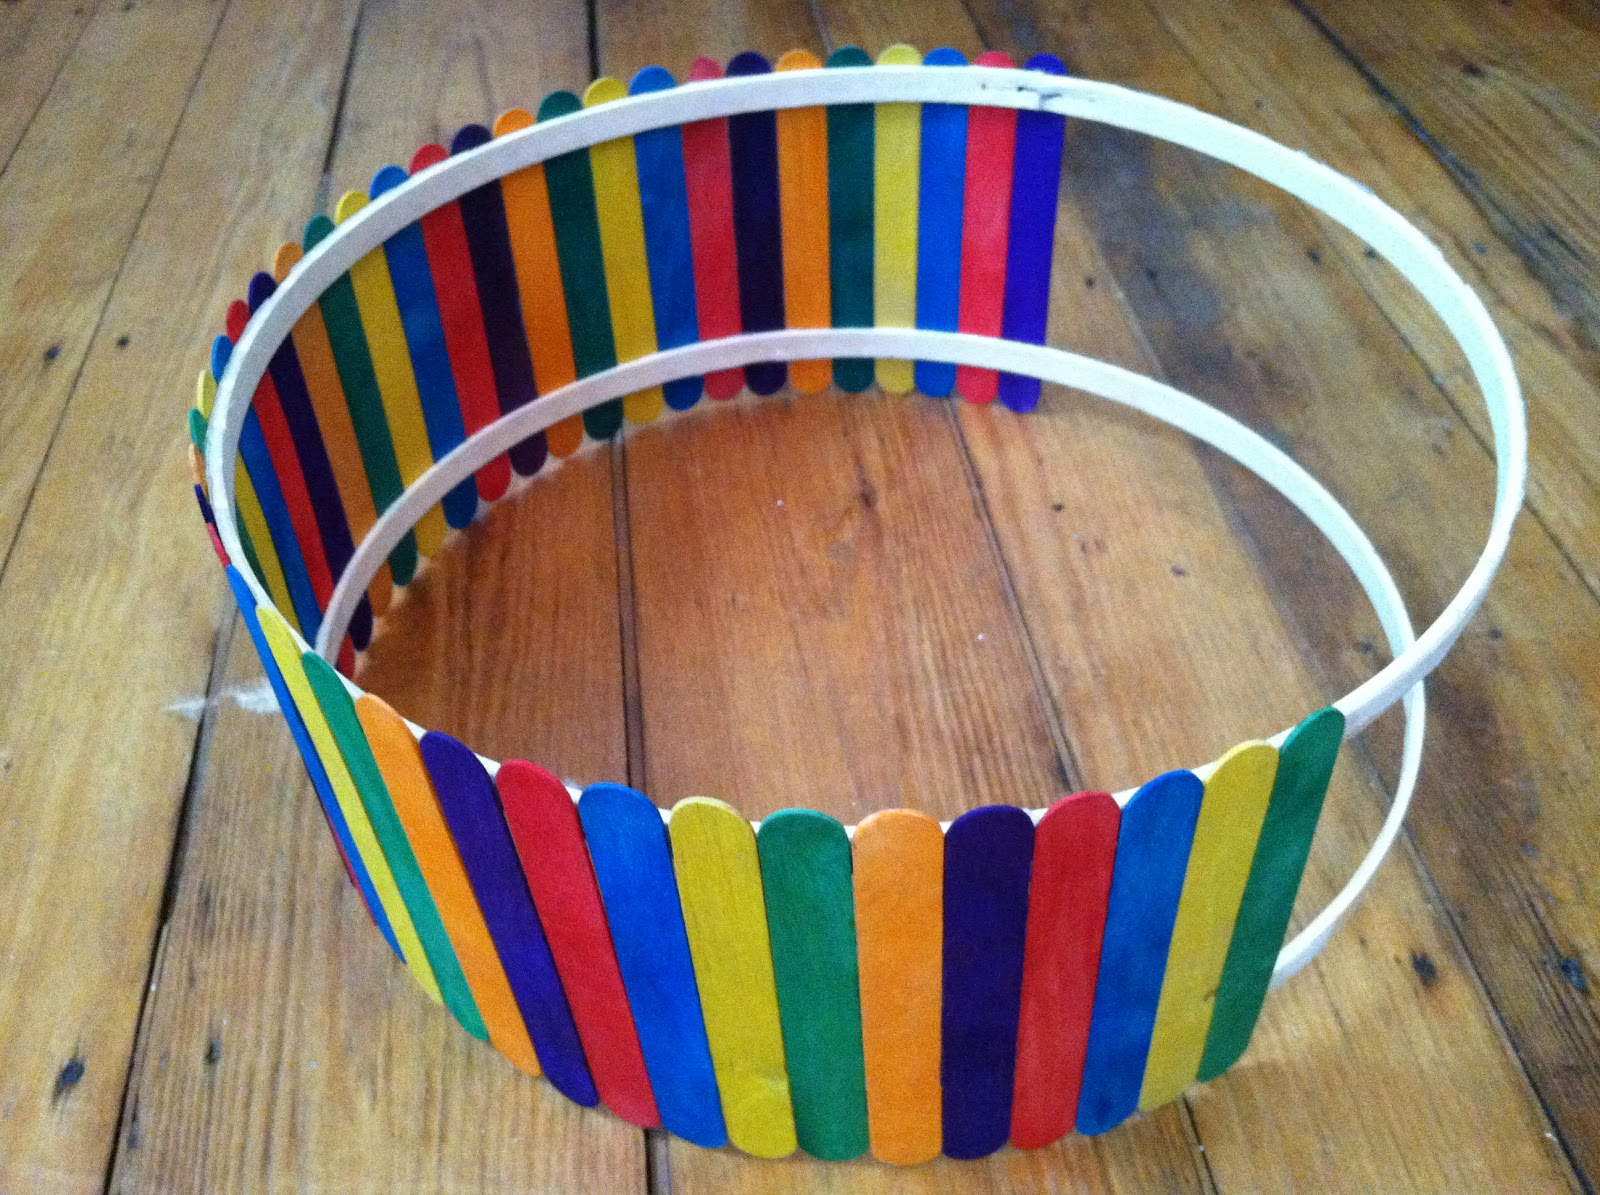 Then I Started Gluing The Popsicle Sticks To Each Set Of Embroidery Hoops Like So As You Can See Chose Multi Colored Jumbo Because